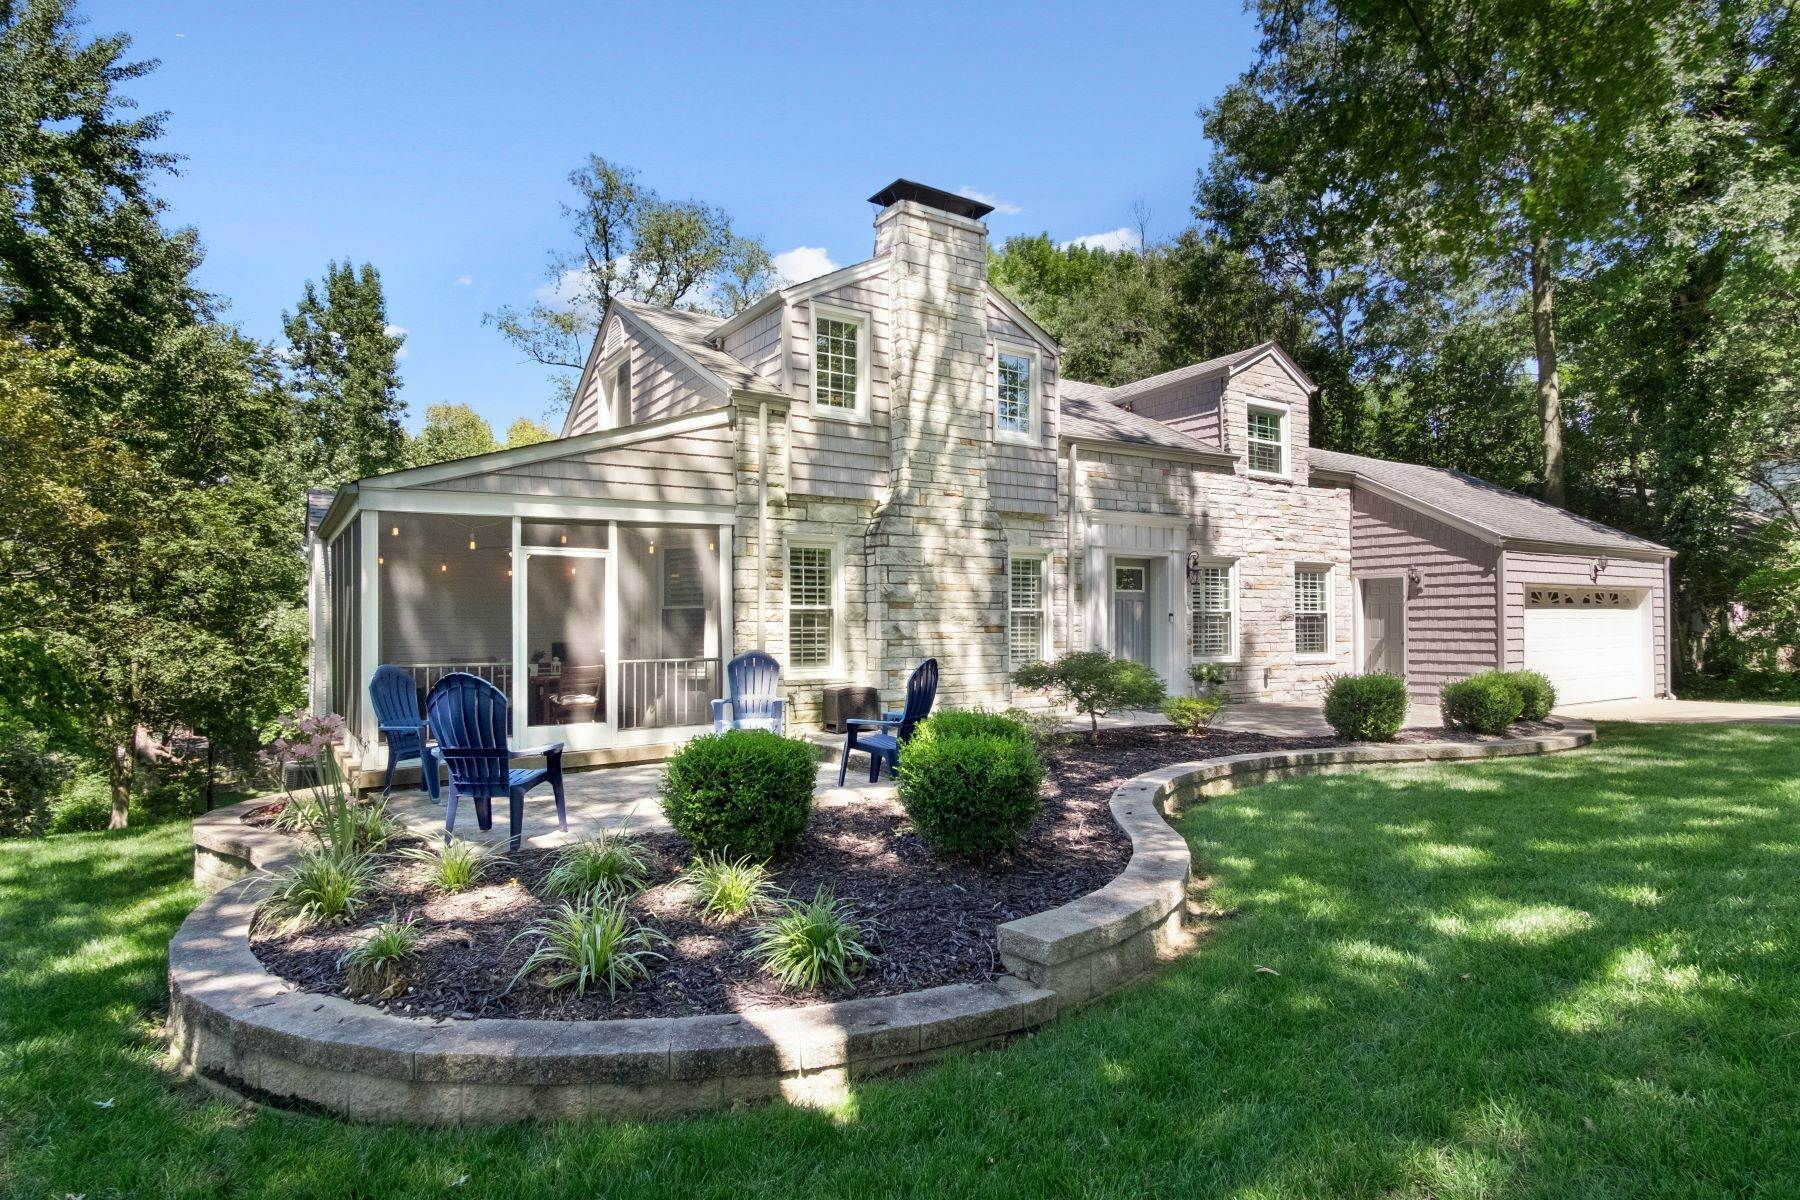 Single Family Homes for Sale at Charming Cape Cod Home In Ladue Schools 4 Chaminade Drive, Creve Coeur, Missouri 63141 United States